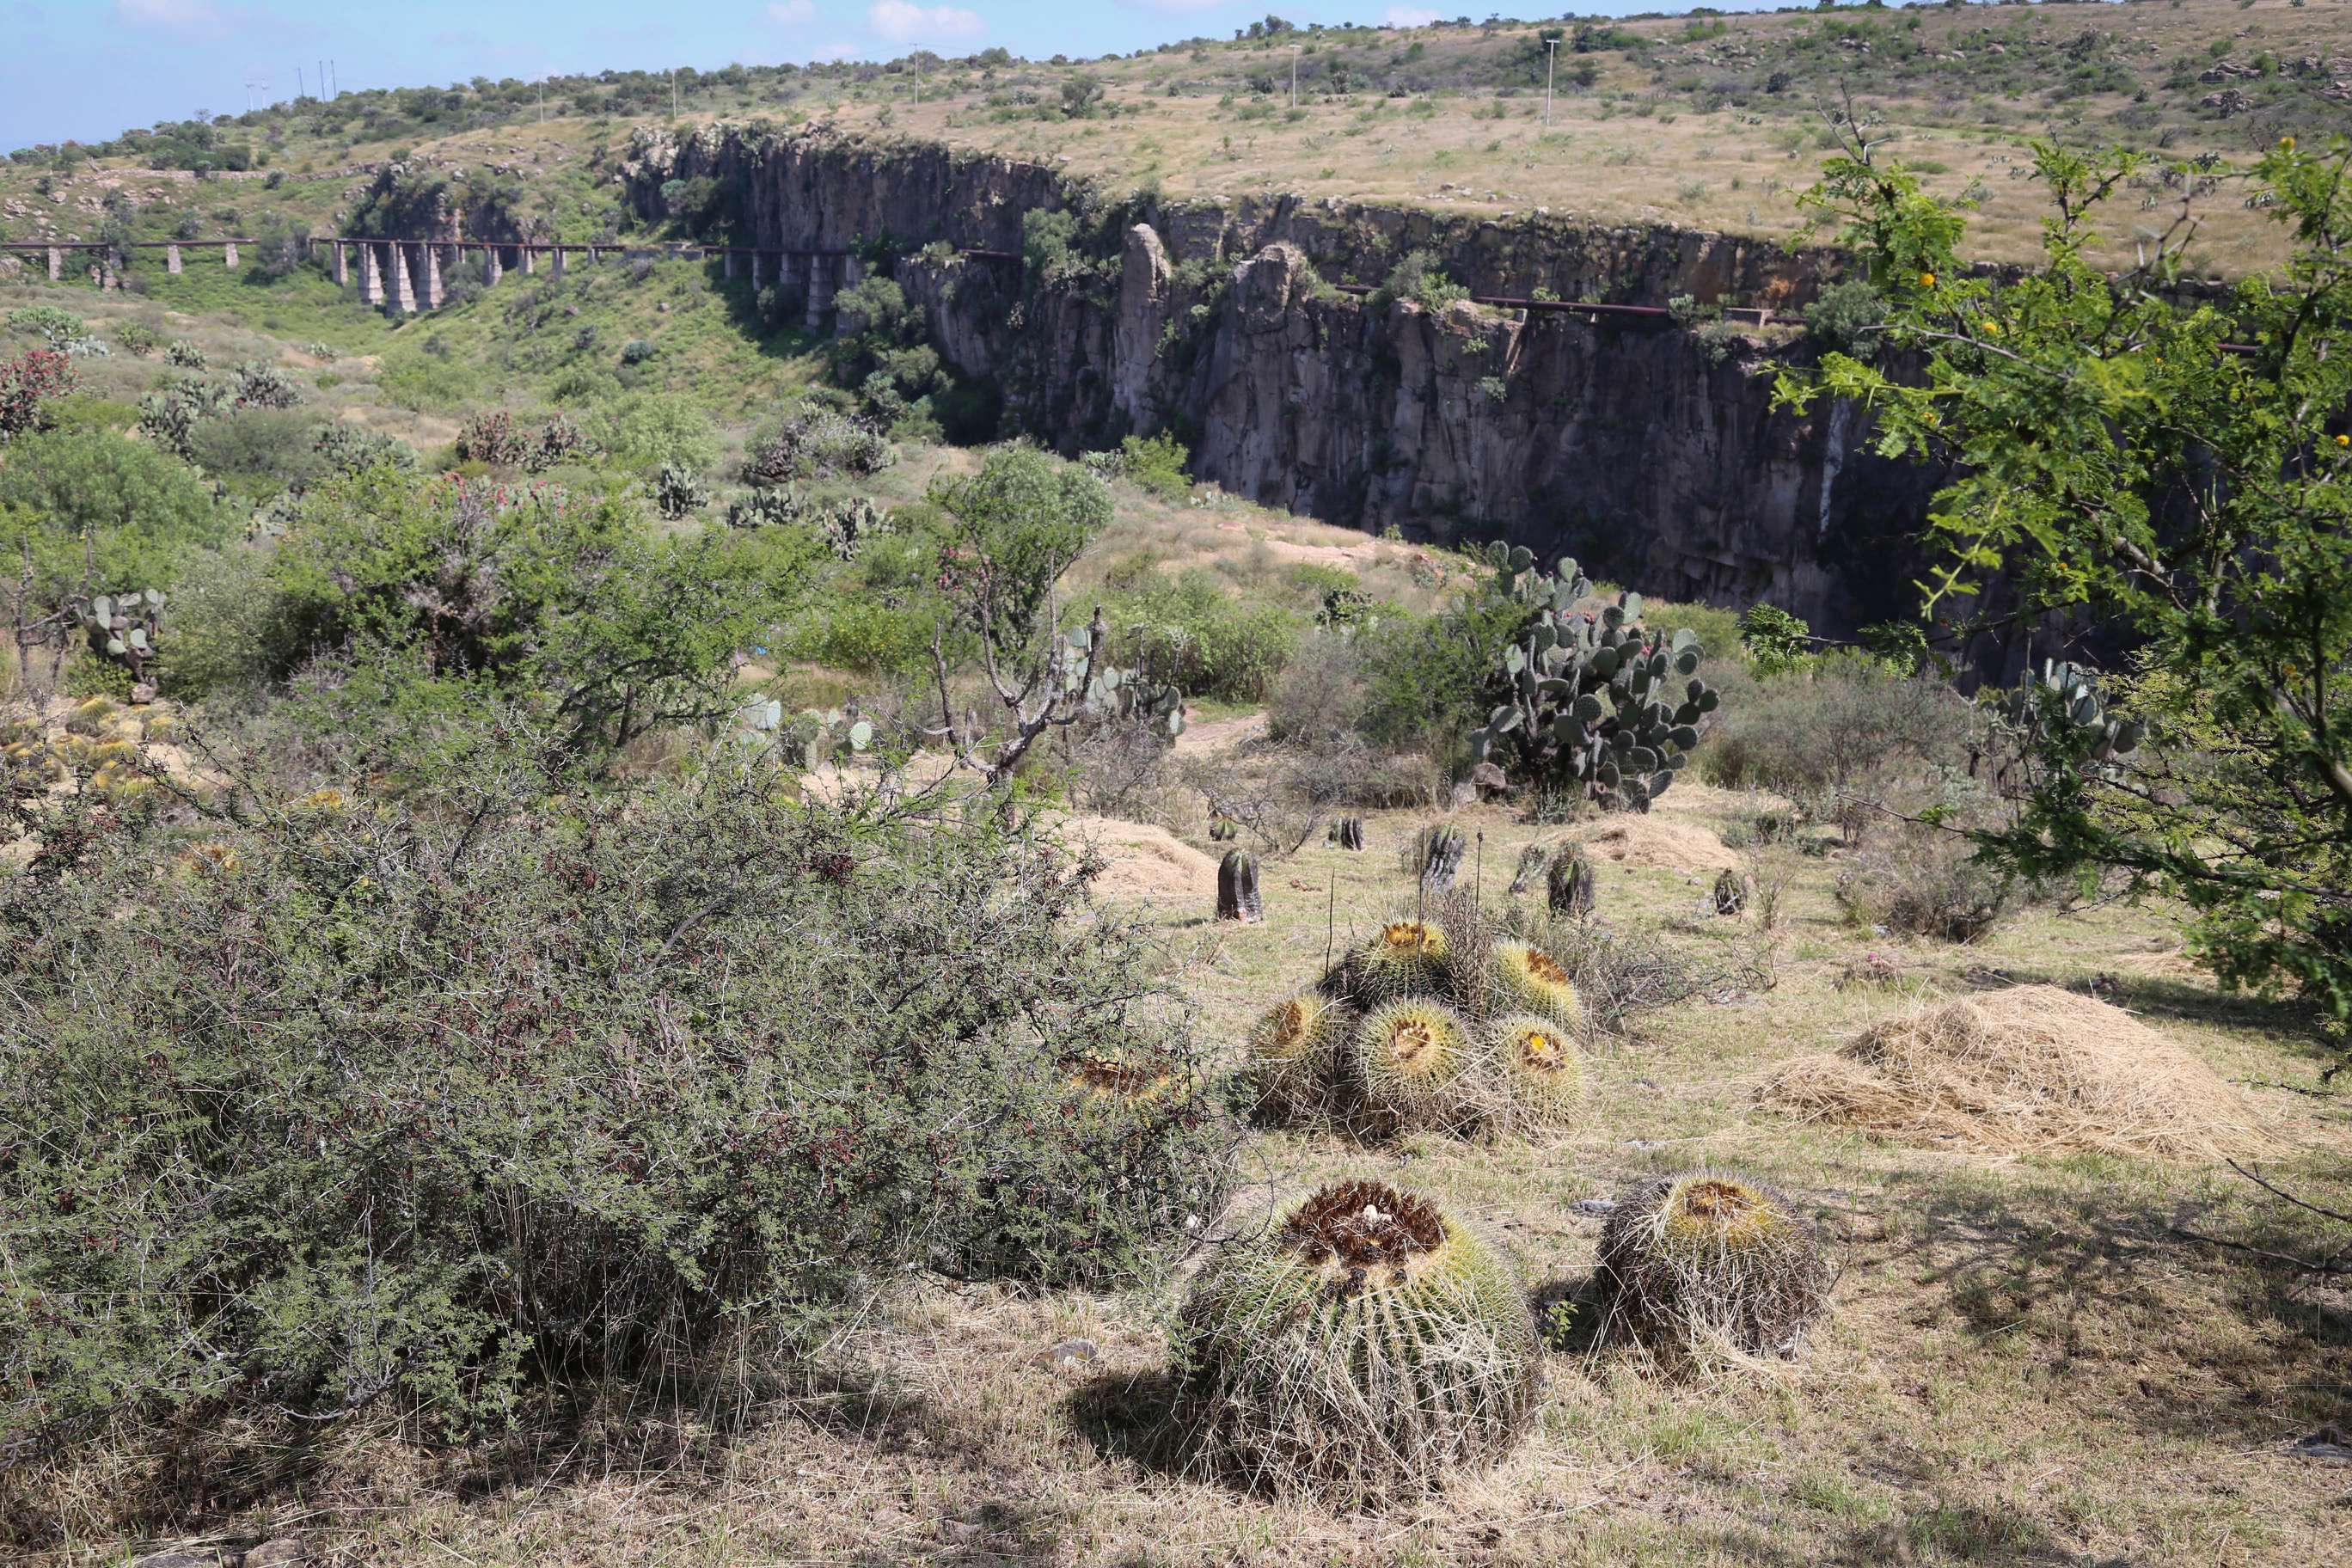 The grounds of El Charco shows the dry scrubland that is home to the succulents and the deep canyon beyond.